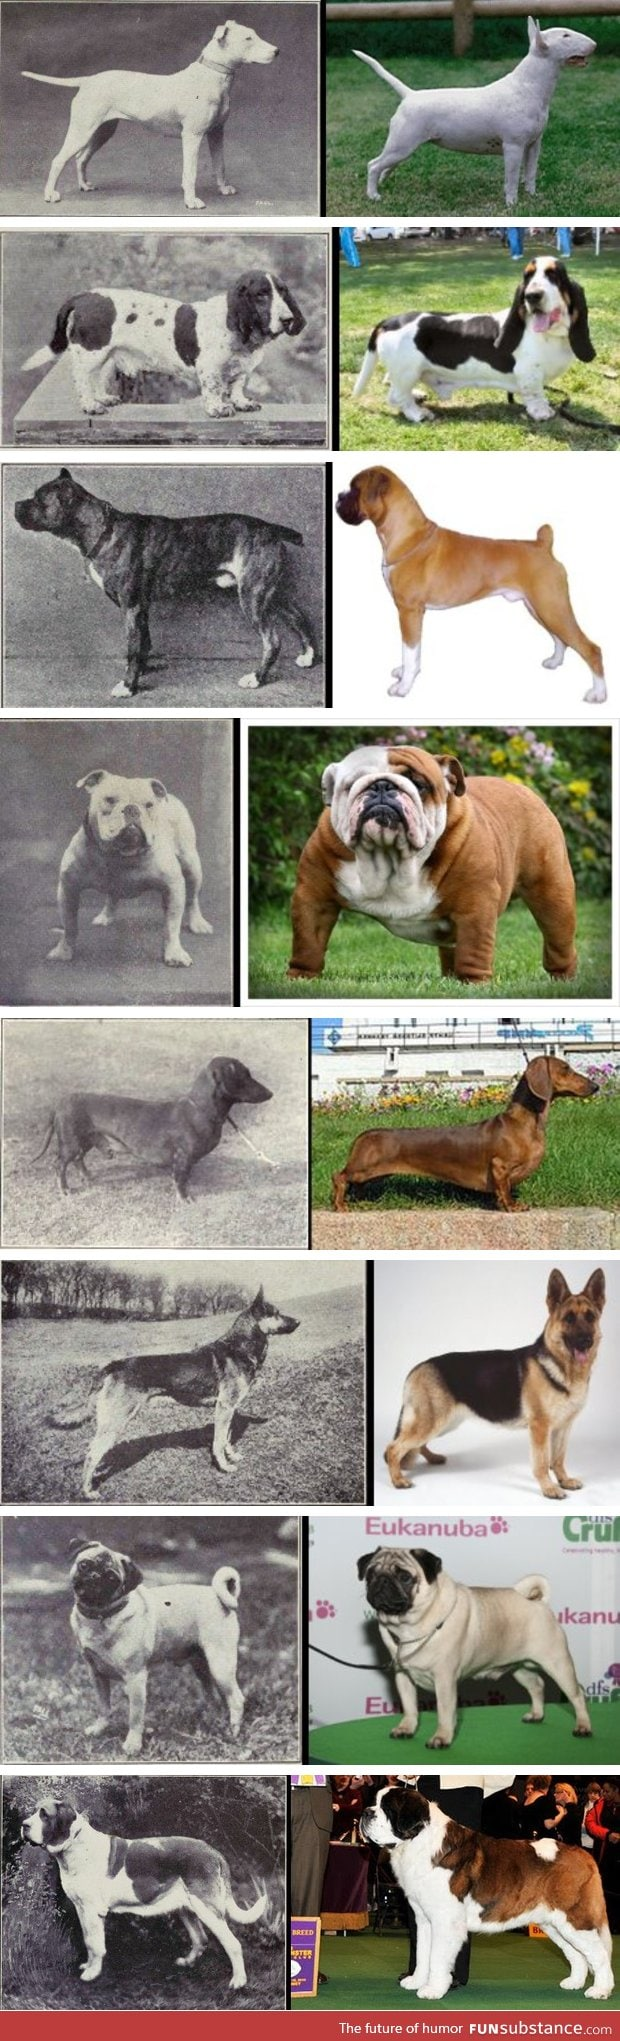 "100 years of dog breed ""improvement"""